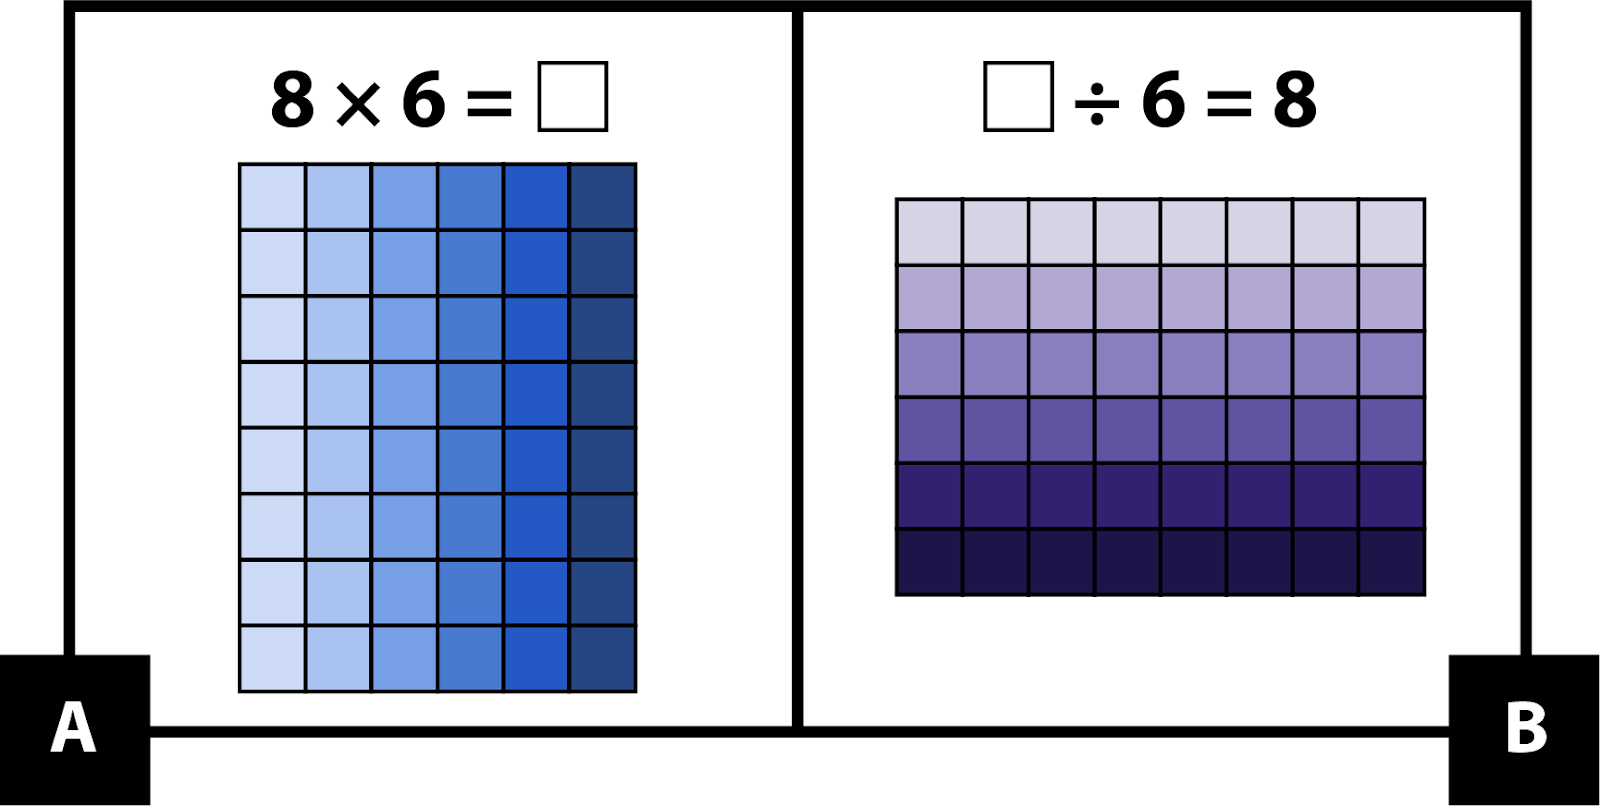 A shows an 8 by 6 array. 8 times 6 = blank. B. shows a 6 by 8 array. Blank divided by 6 = 8.